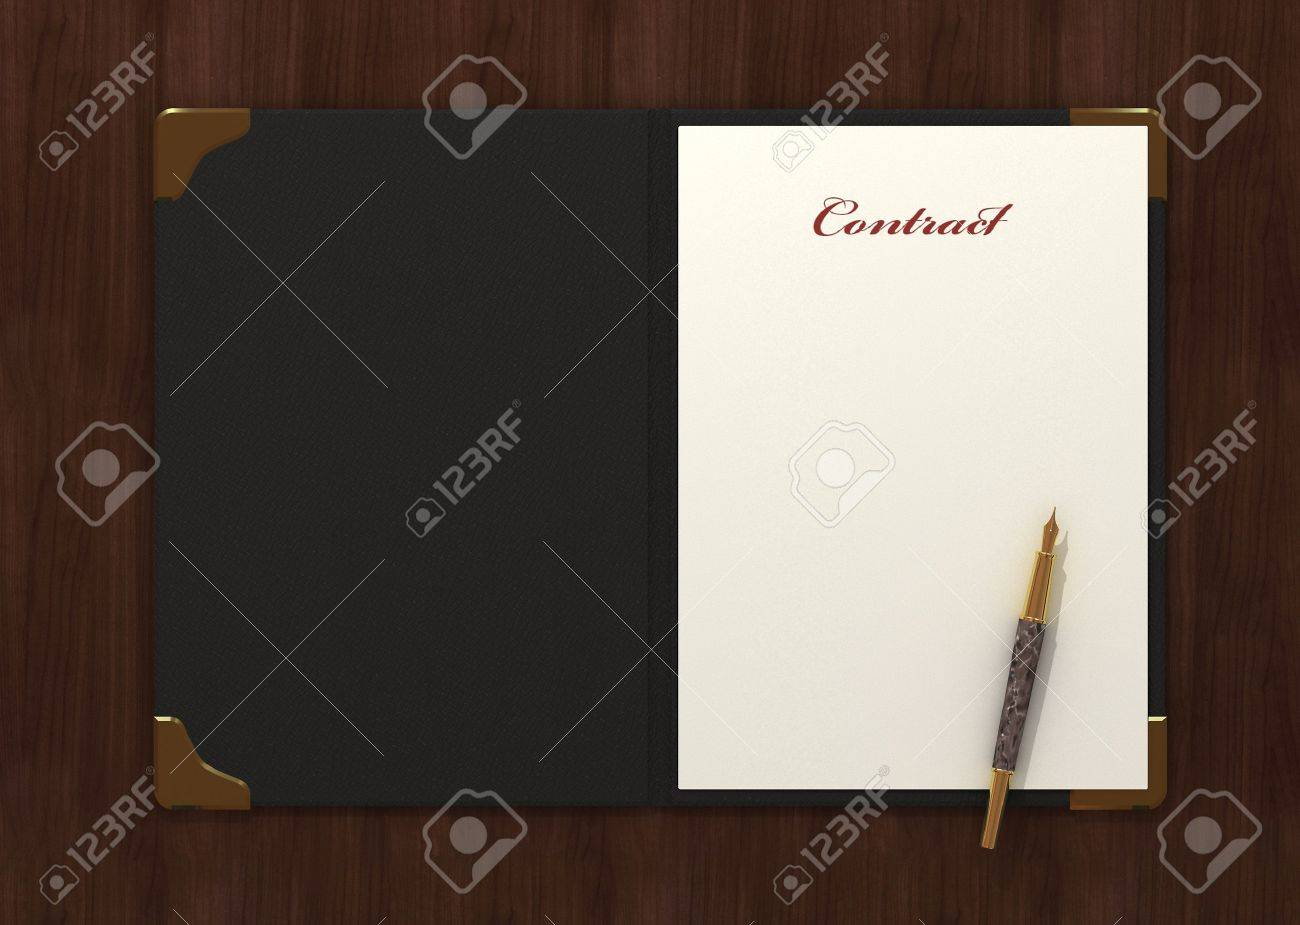 Form of contract. 3d rendering. Stock Photo - 3454032